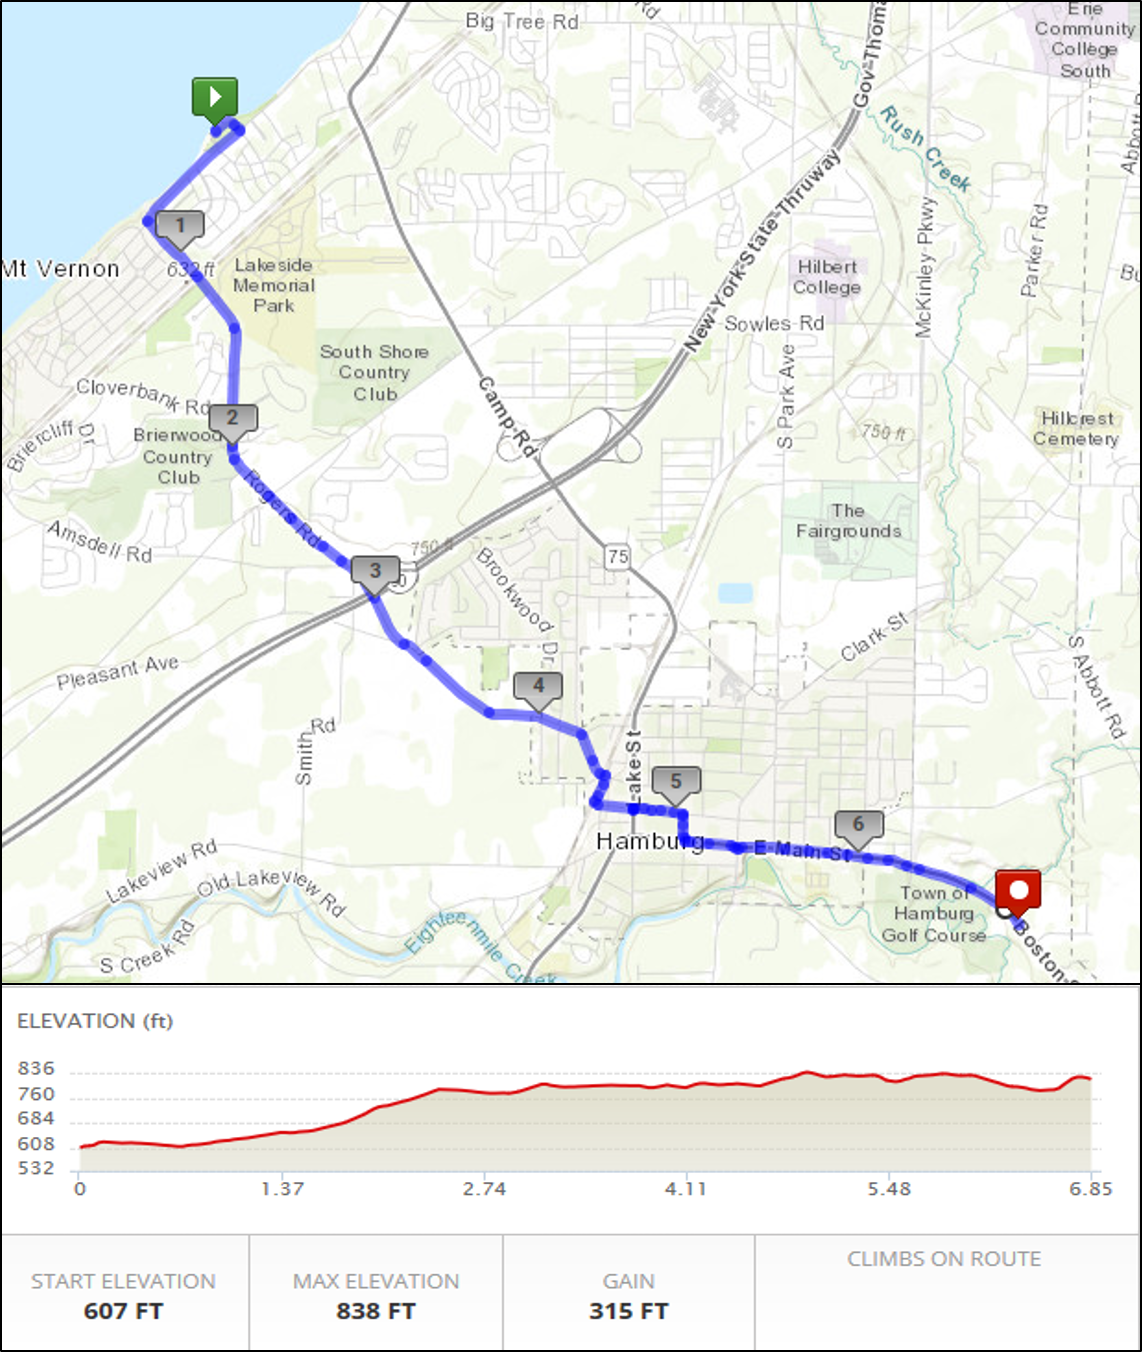 Run Route 02 APR 2019.png